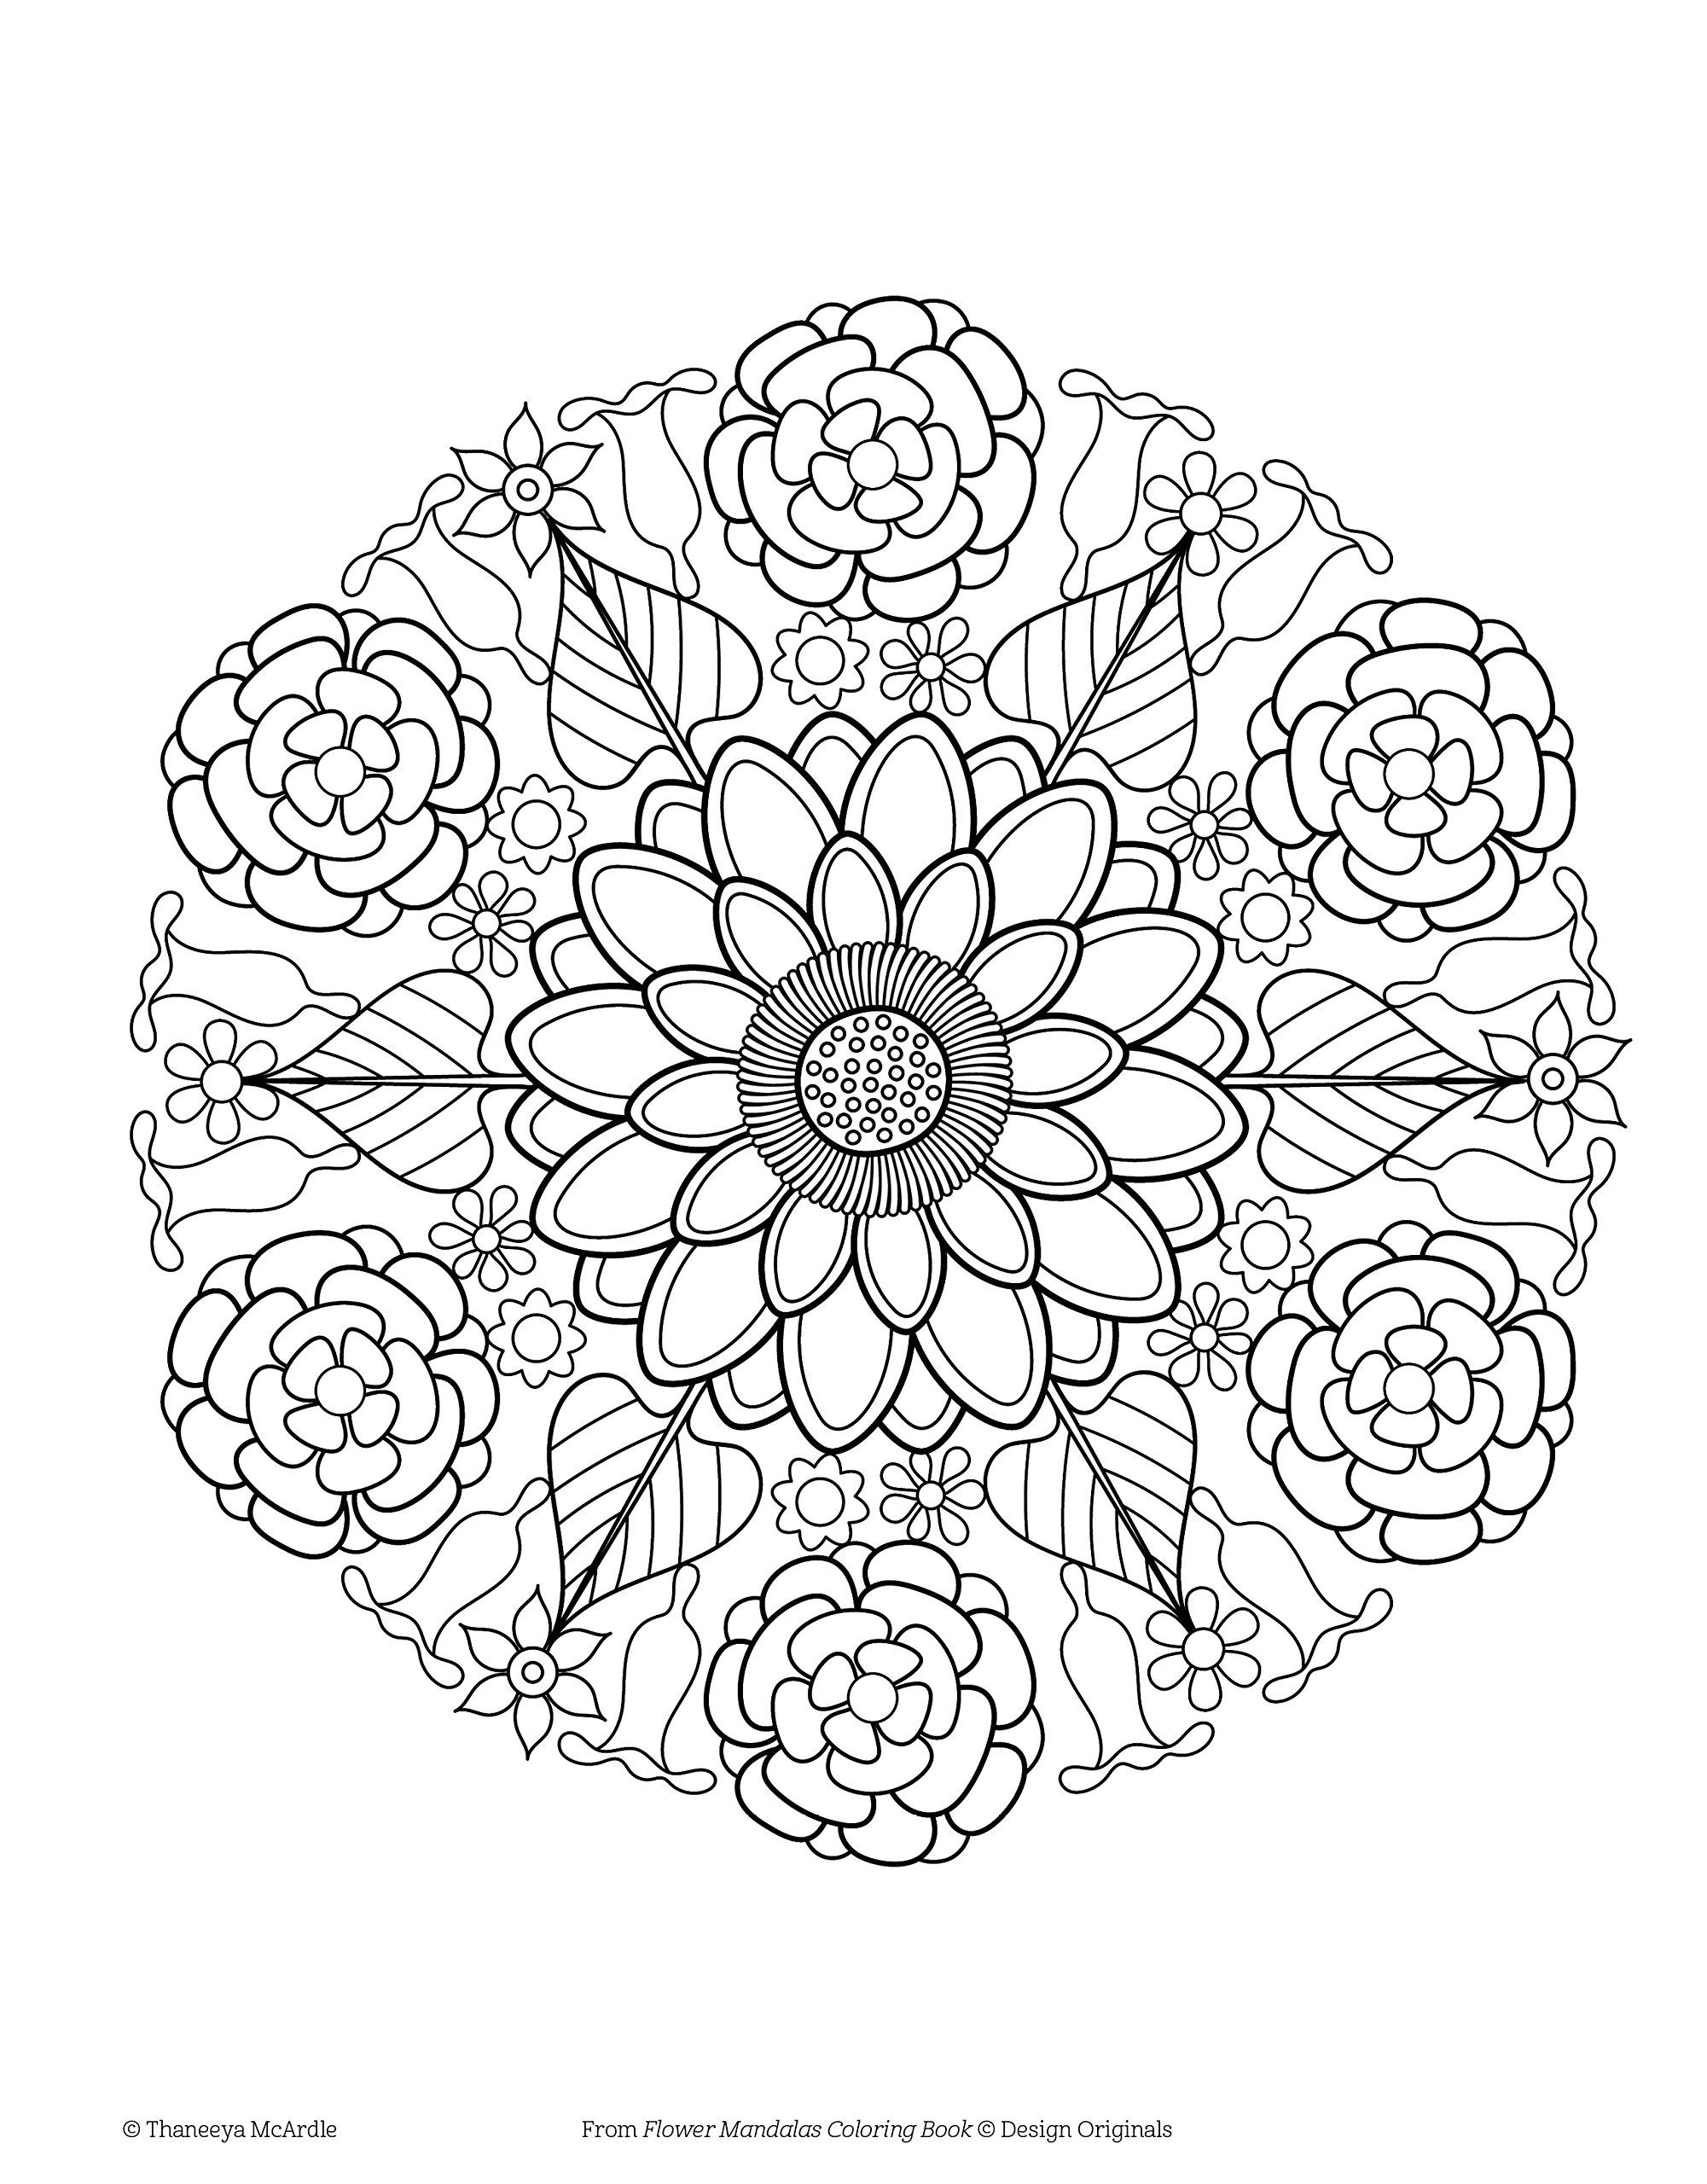 Flower Mandalas Coloring Book Design Originals 30 Beginner Friendly Mandala Coloring Pages Tattoo Coloring Book Mandala Coloring Books